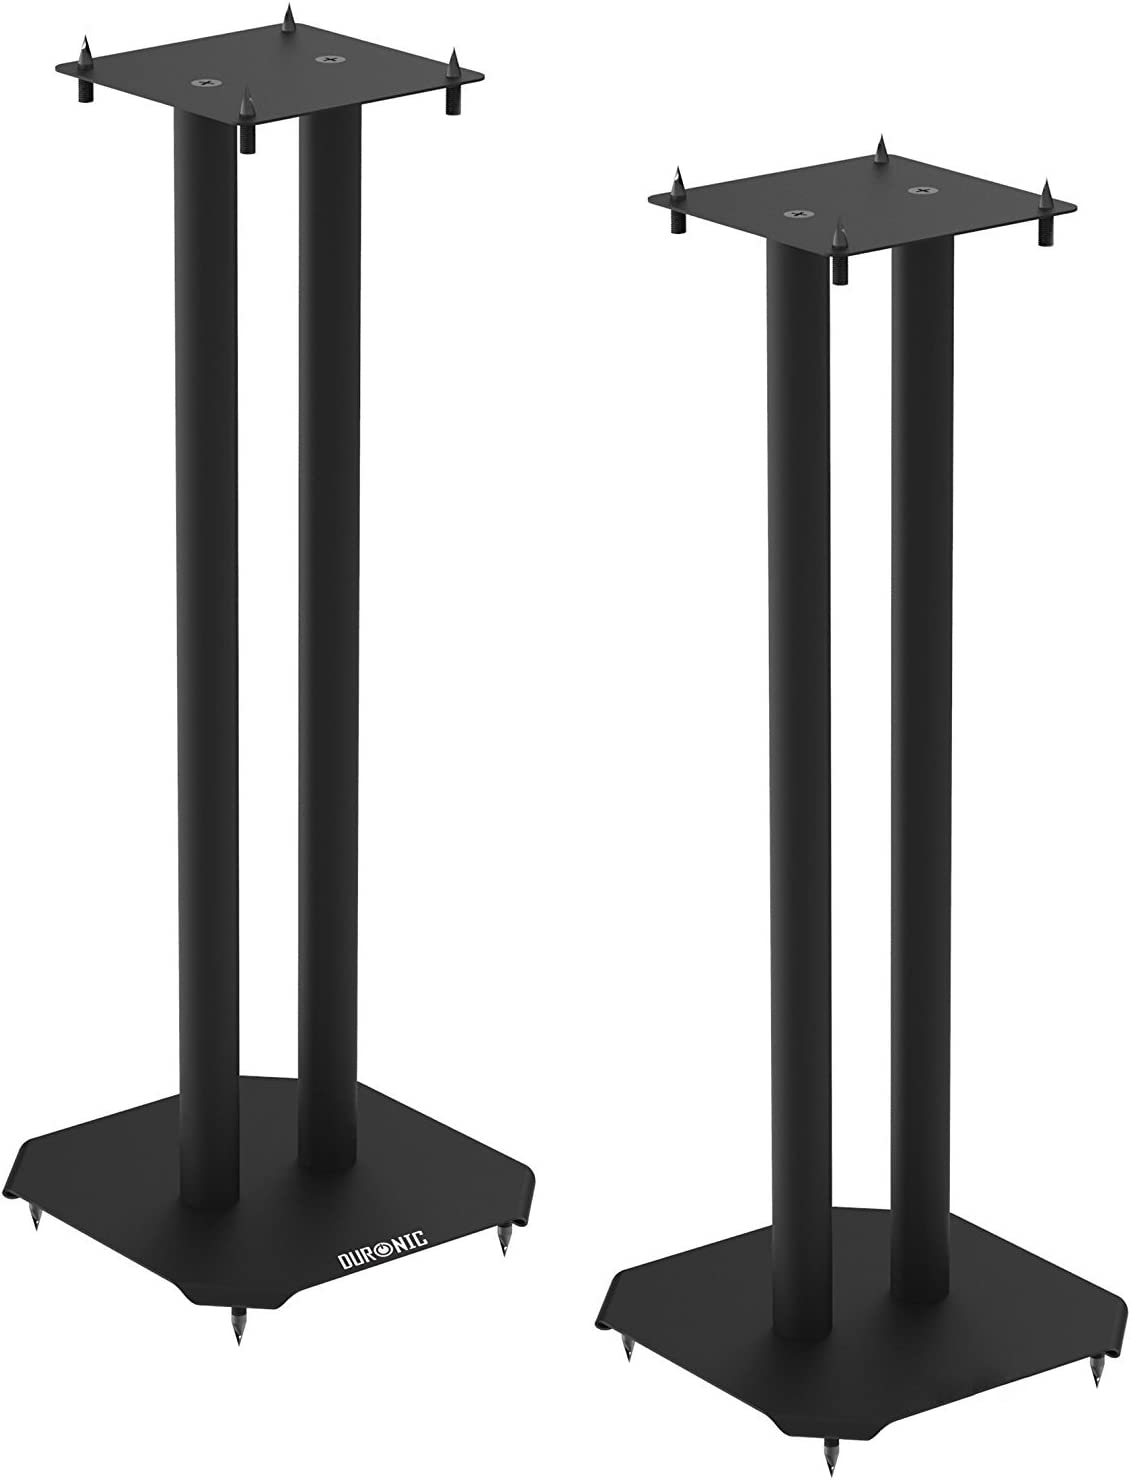 Set of 2 Steel Base Supports for Stereo Loudspeakers pair LARGE 80cm For Better Audio Shoes and Pads Floor Standing with Spikes SPS1022-80 Duronic Speaker Stand Insulating Black